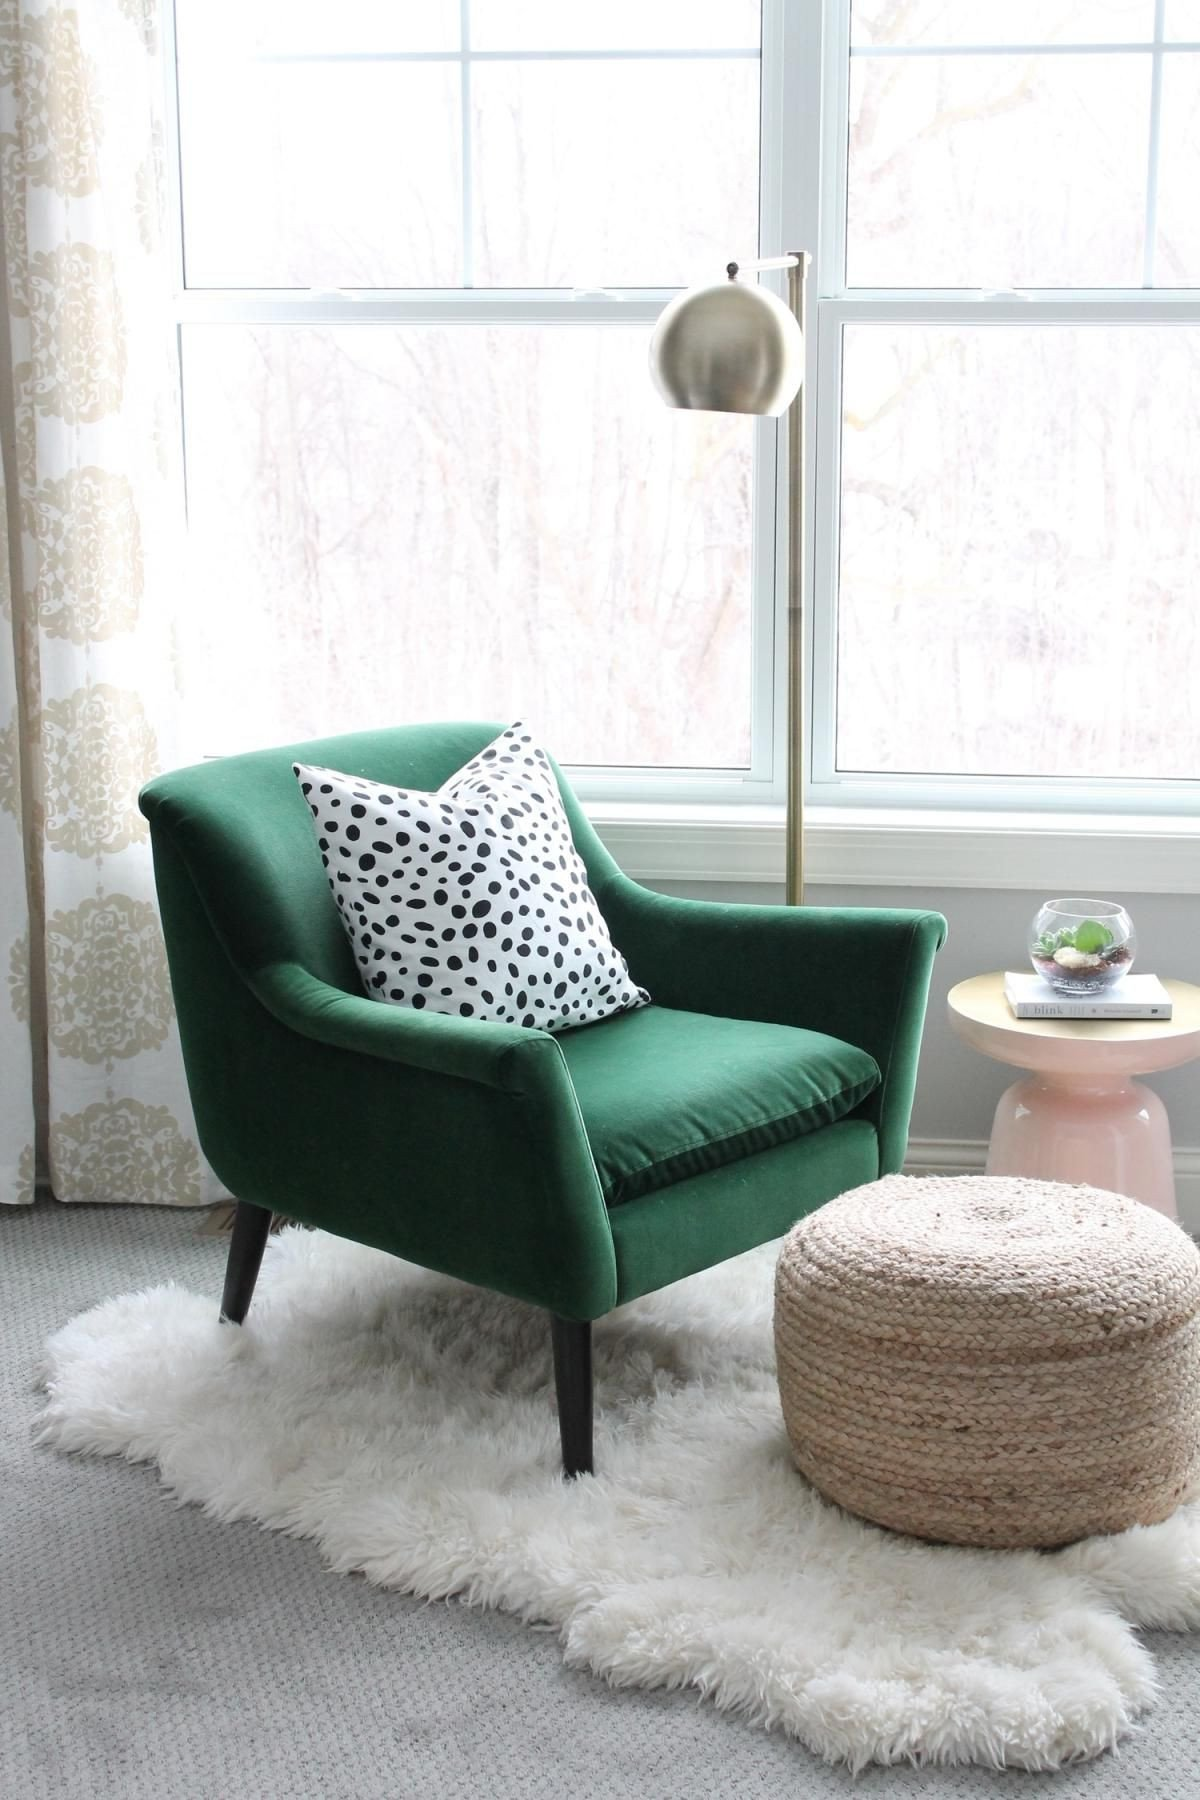 Nice Chairs for Bedroom Inspirational How to Decorate Your Bedroom Like An Adult Via Simply Grove